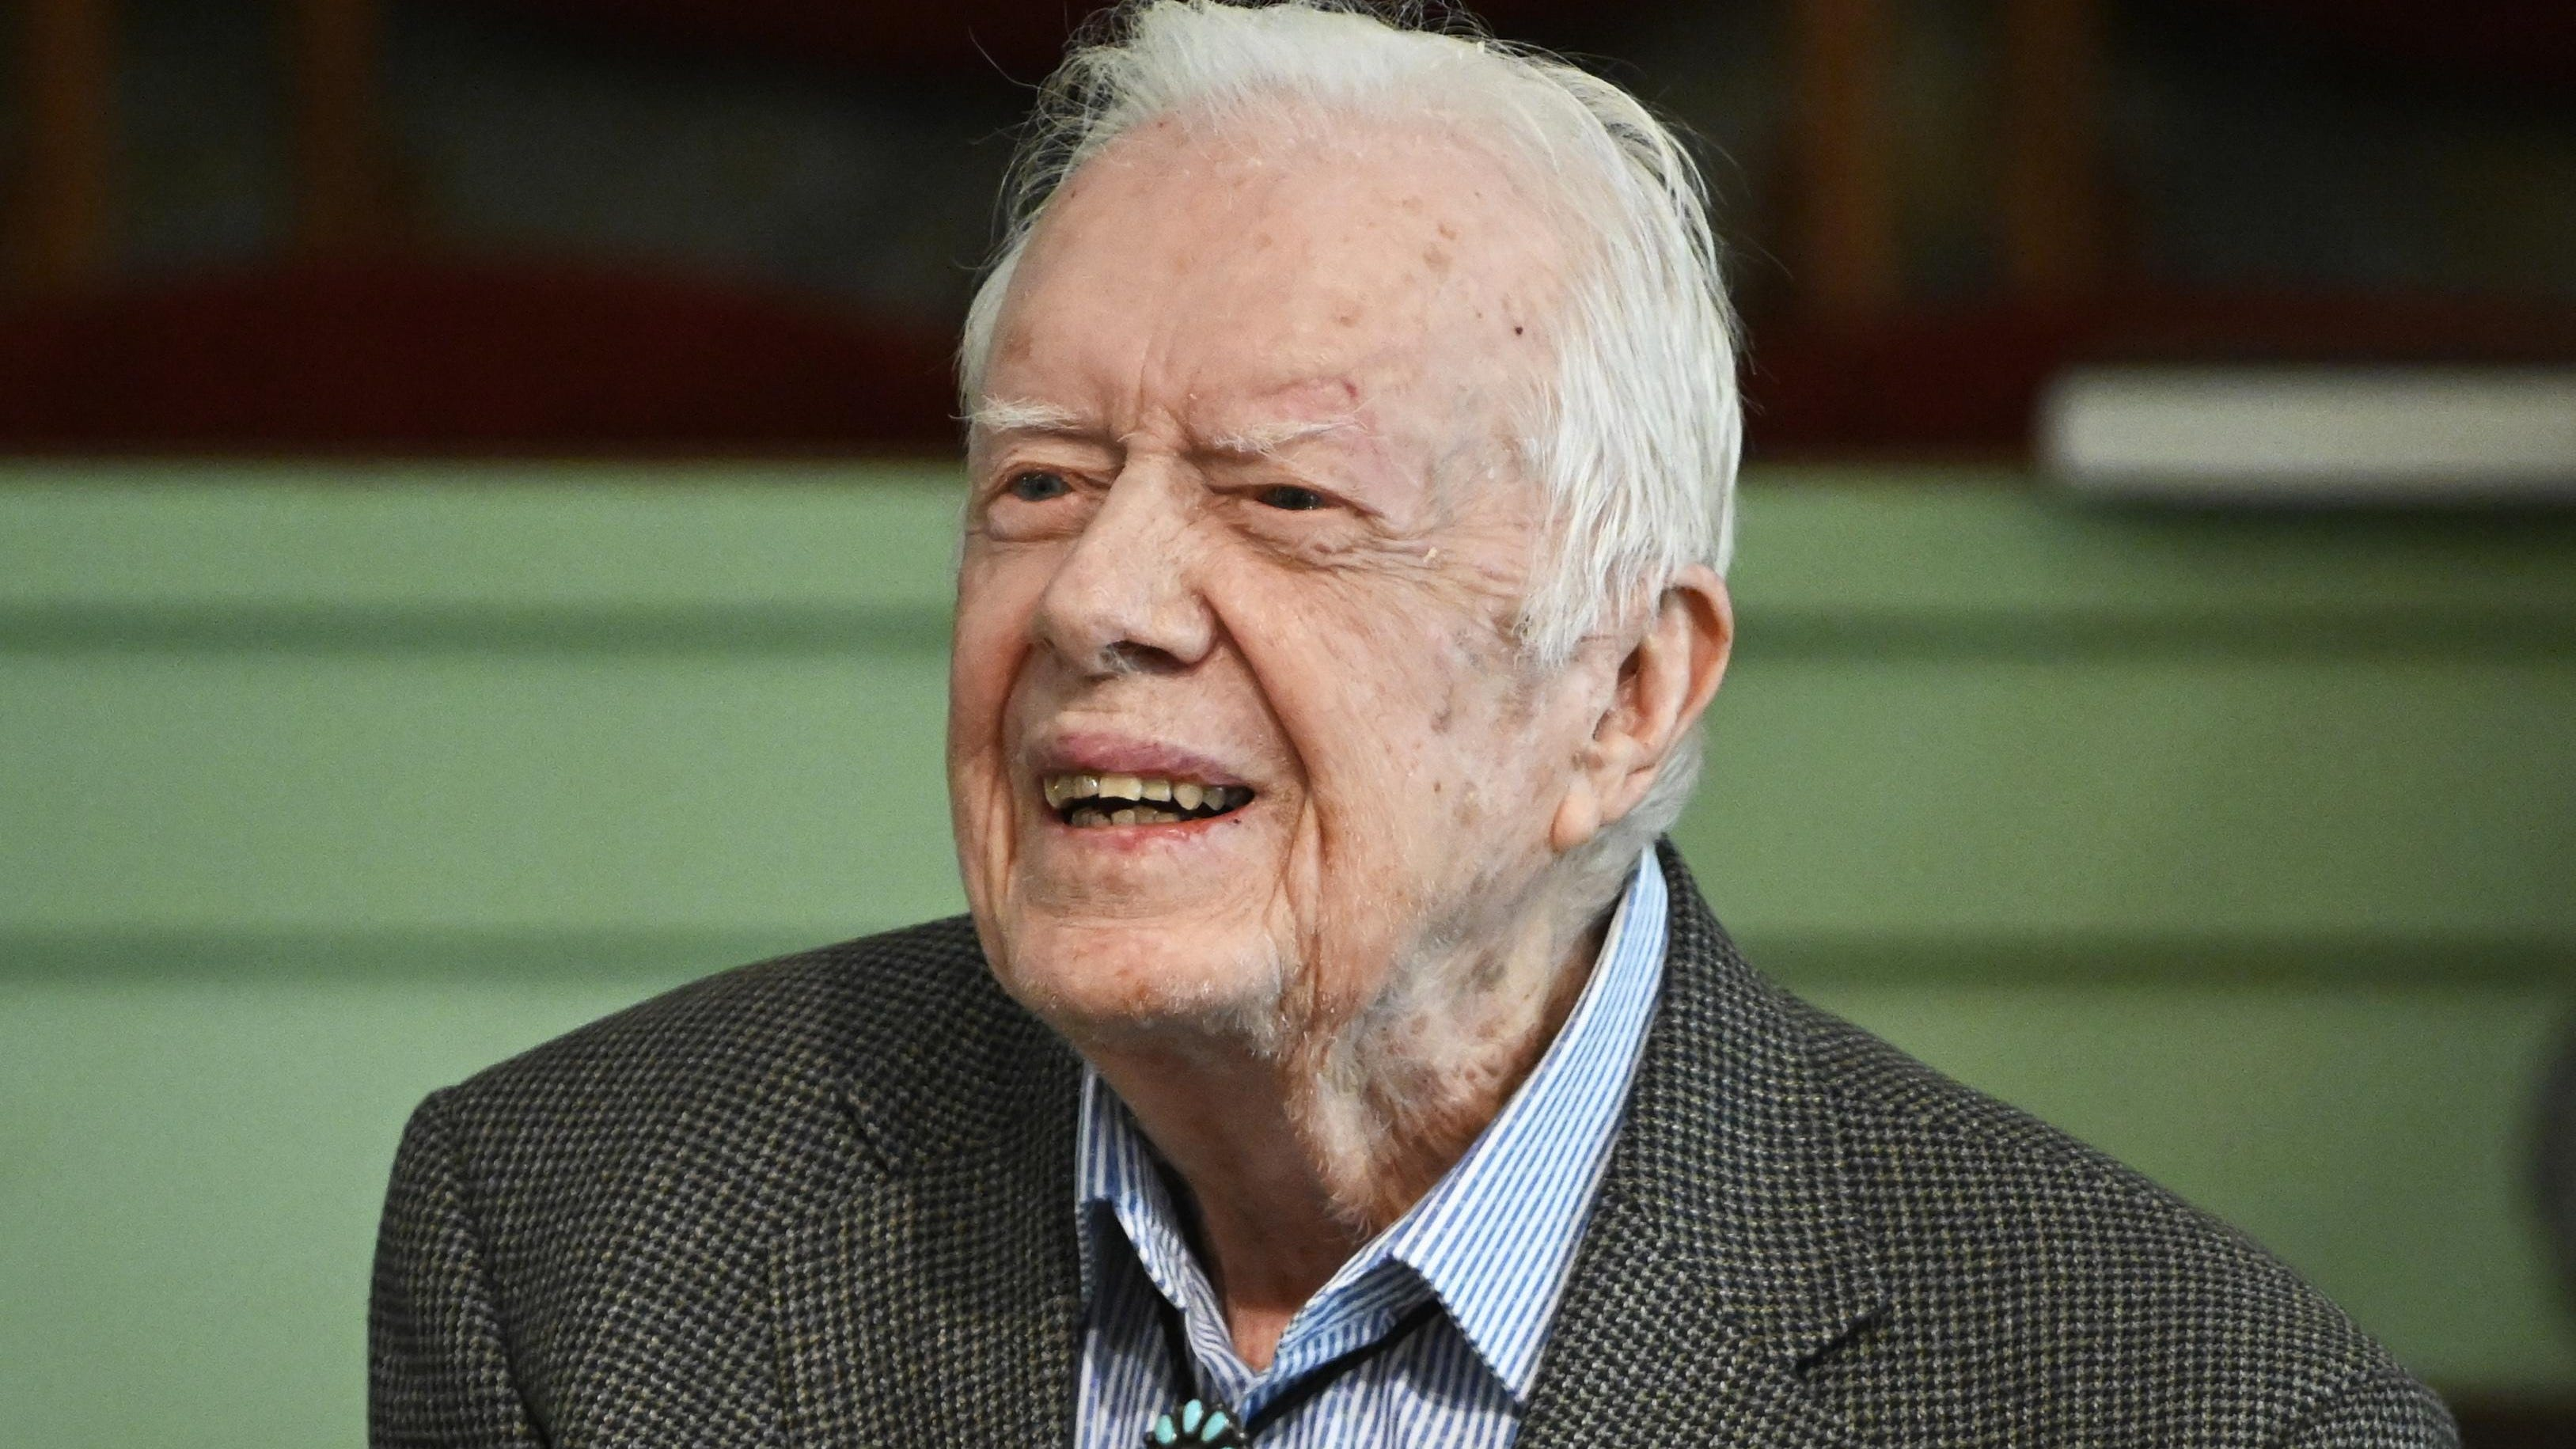 Re Designation Of Jimmy Carter National Historic Site Clears Congress